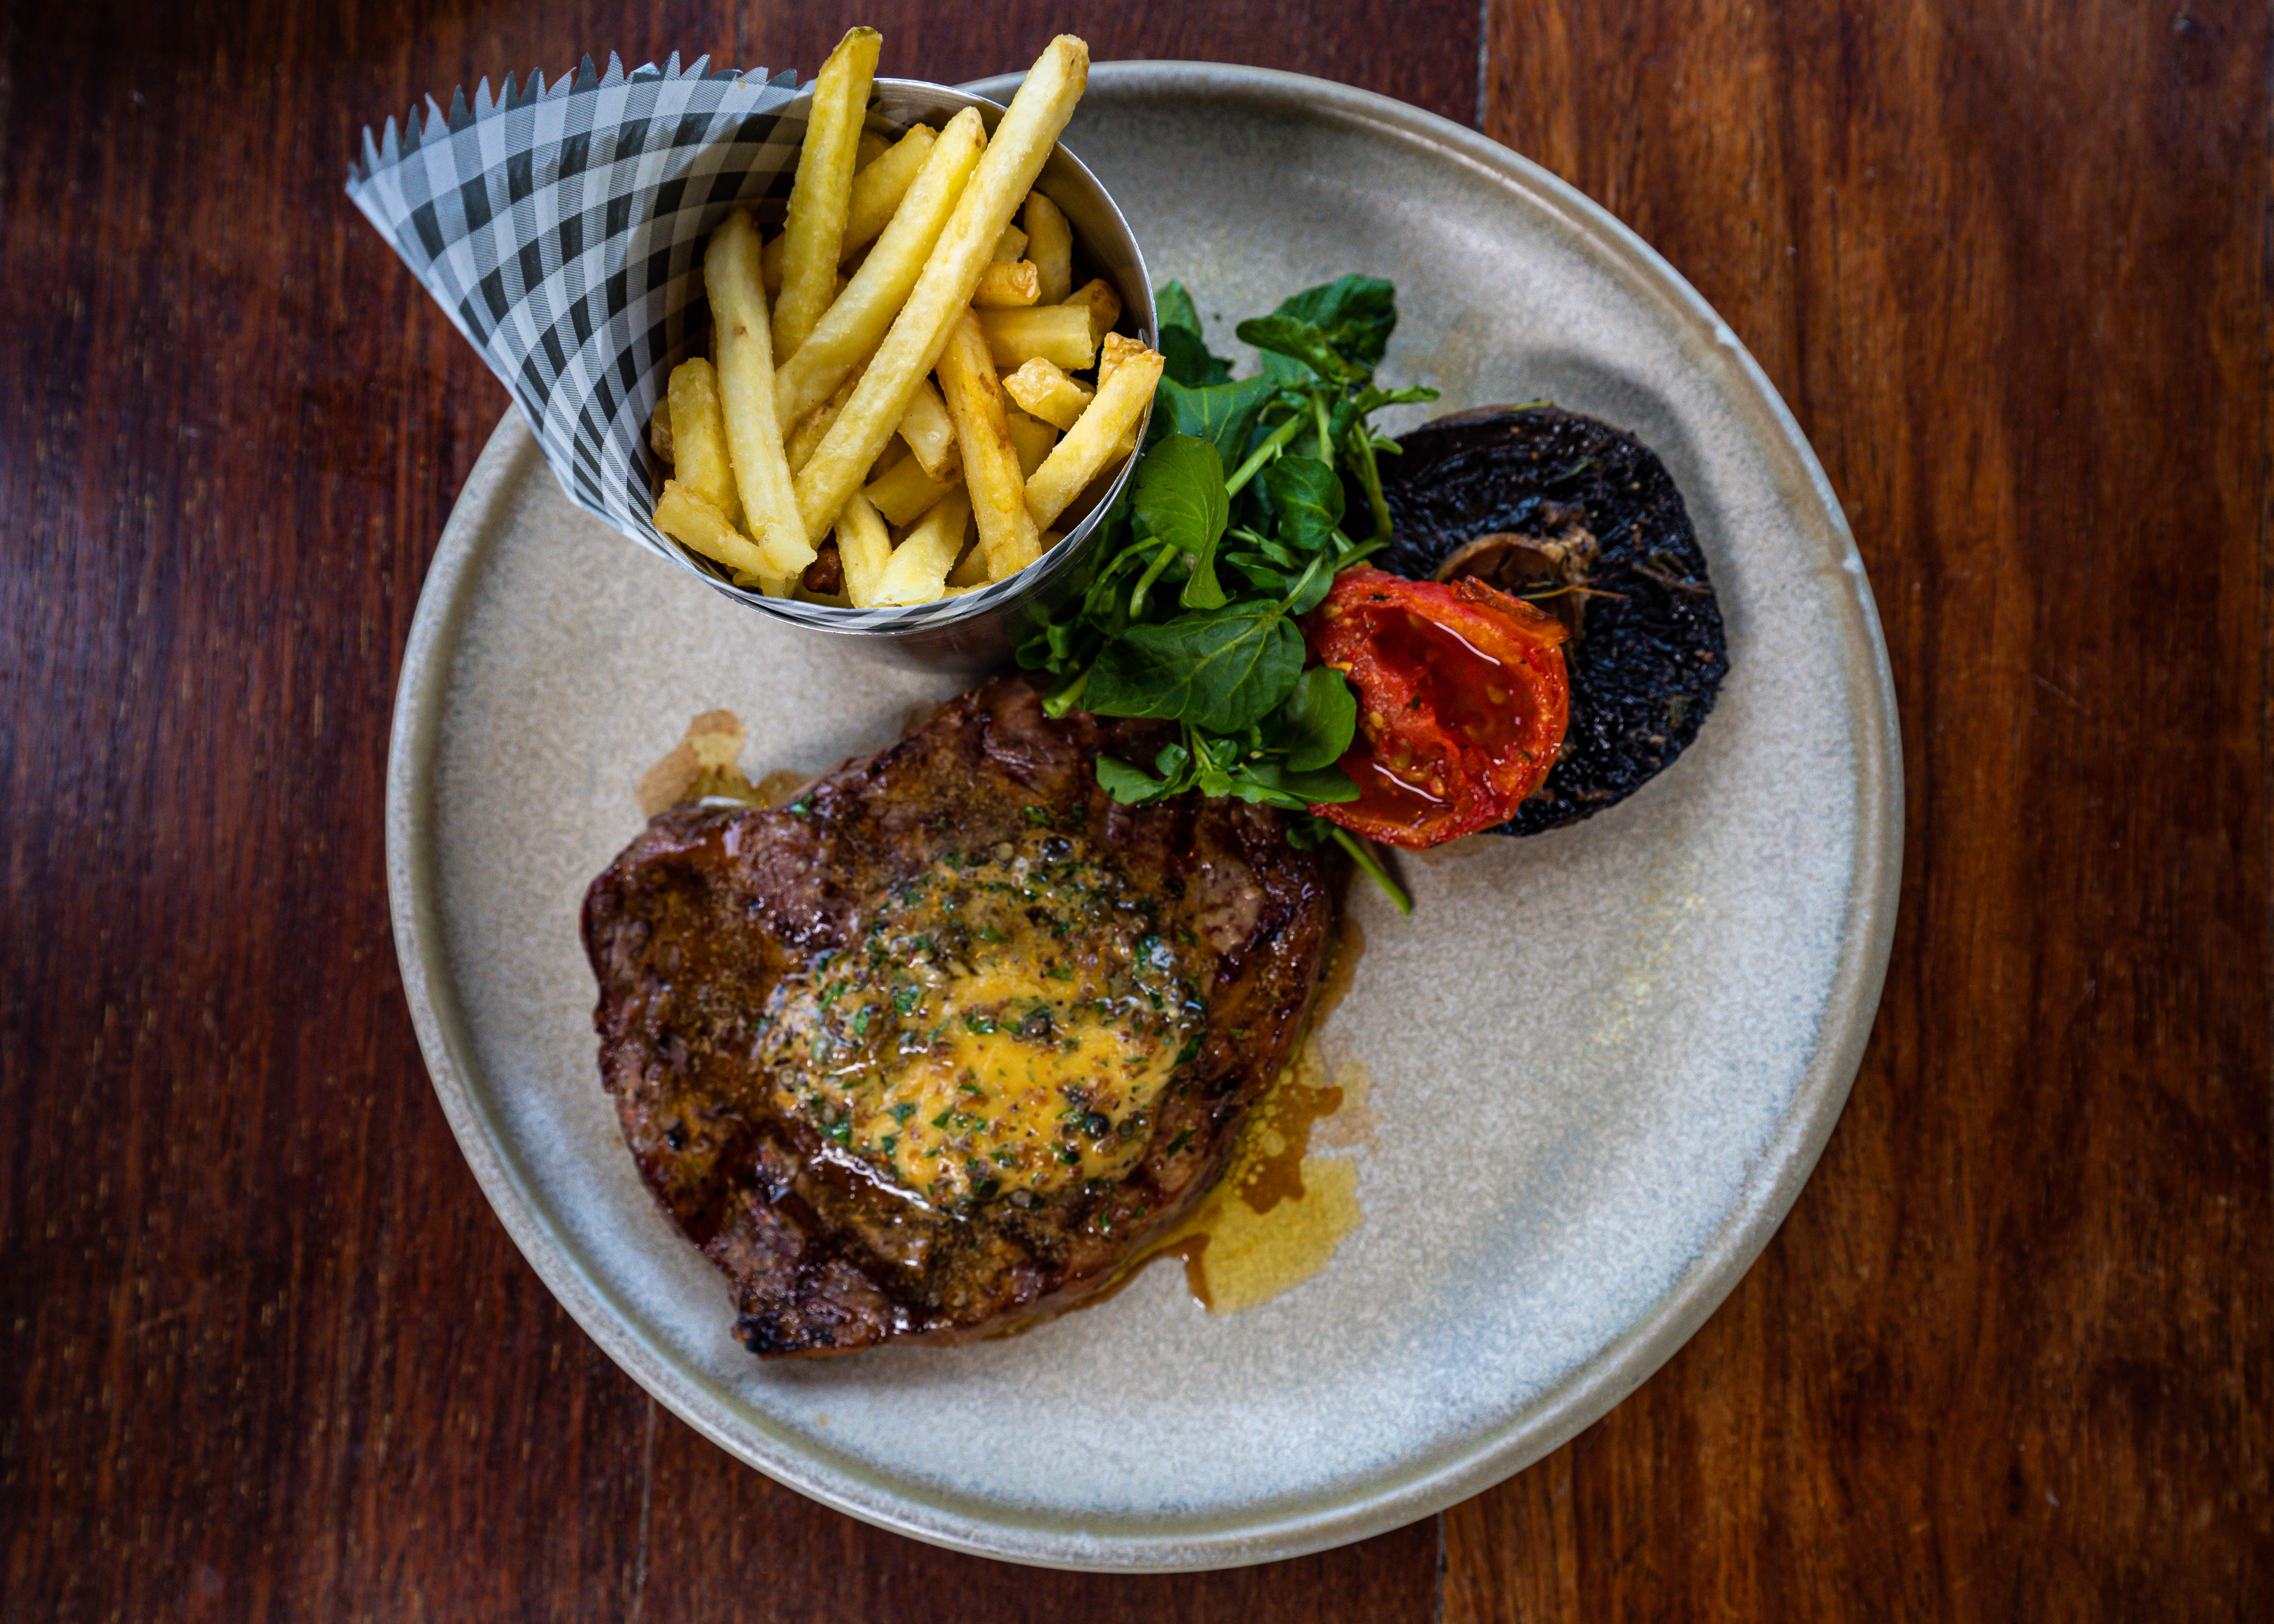 The steak and fried from The Union